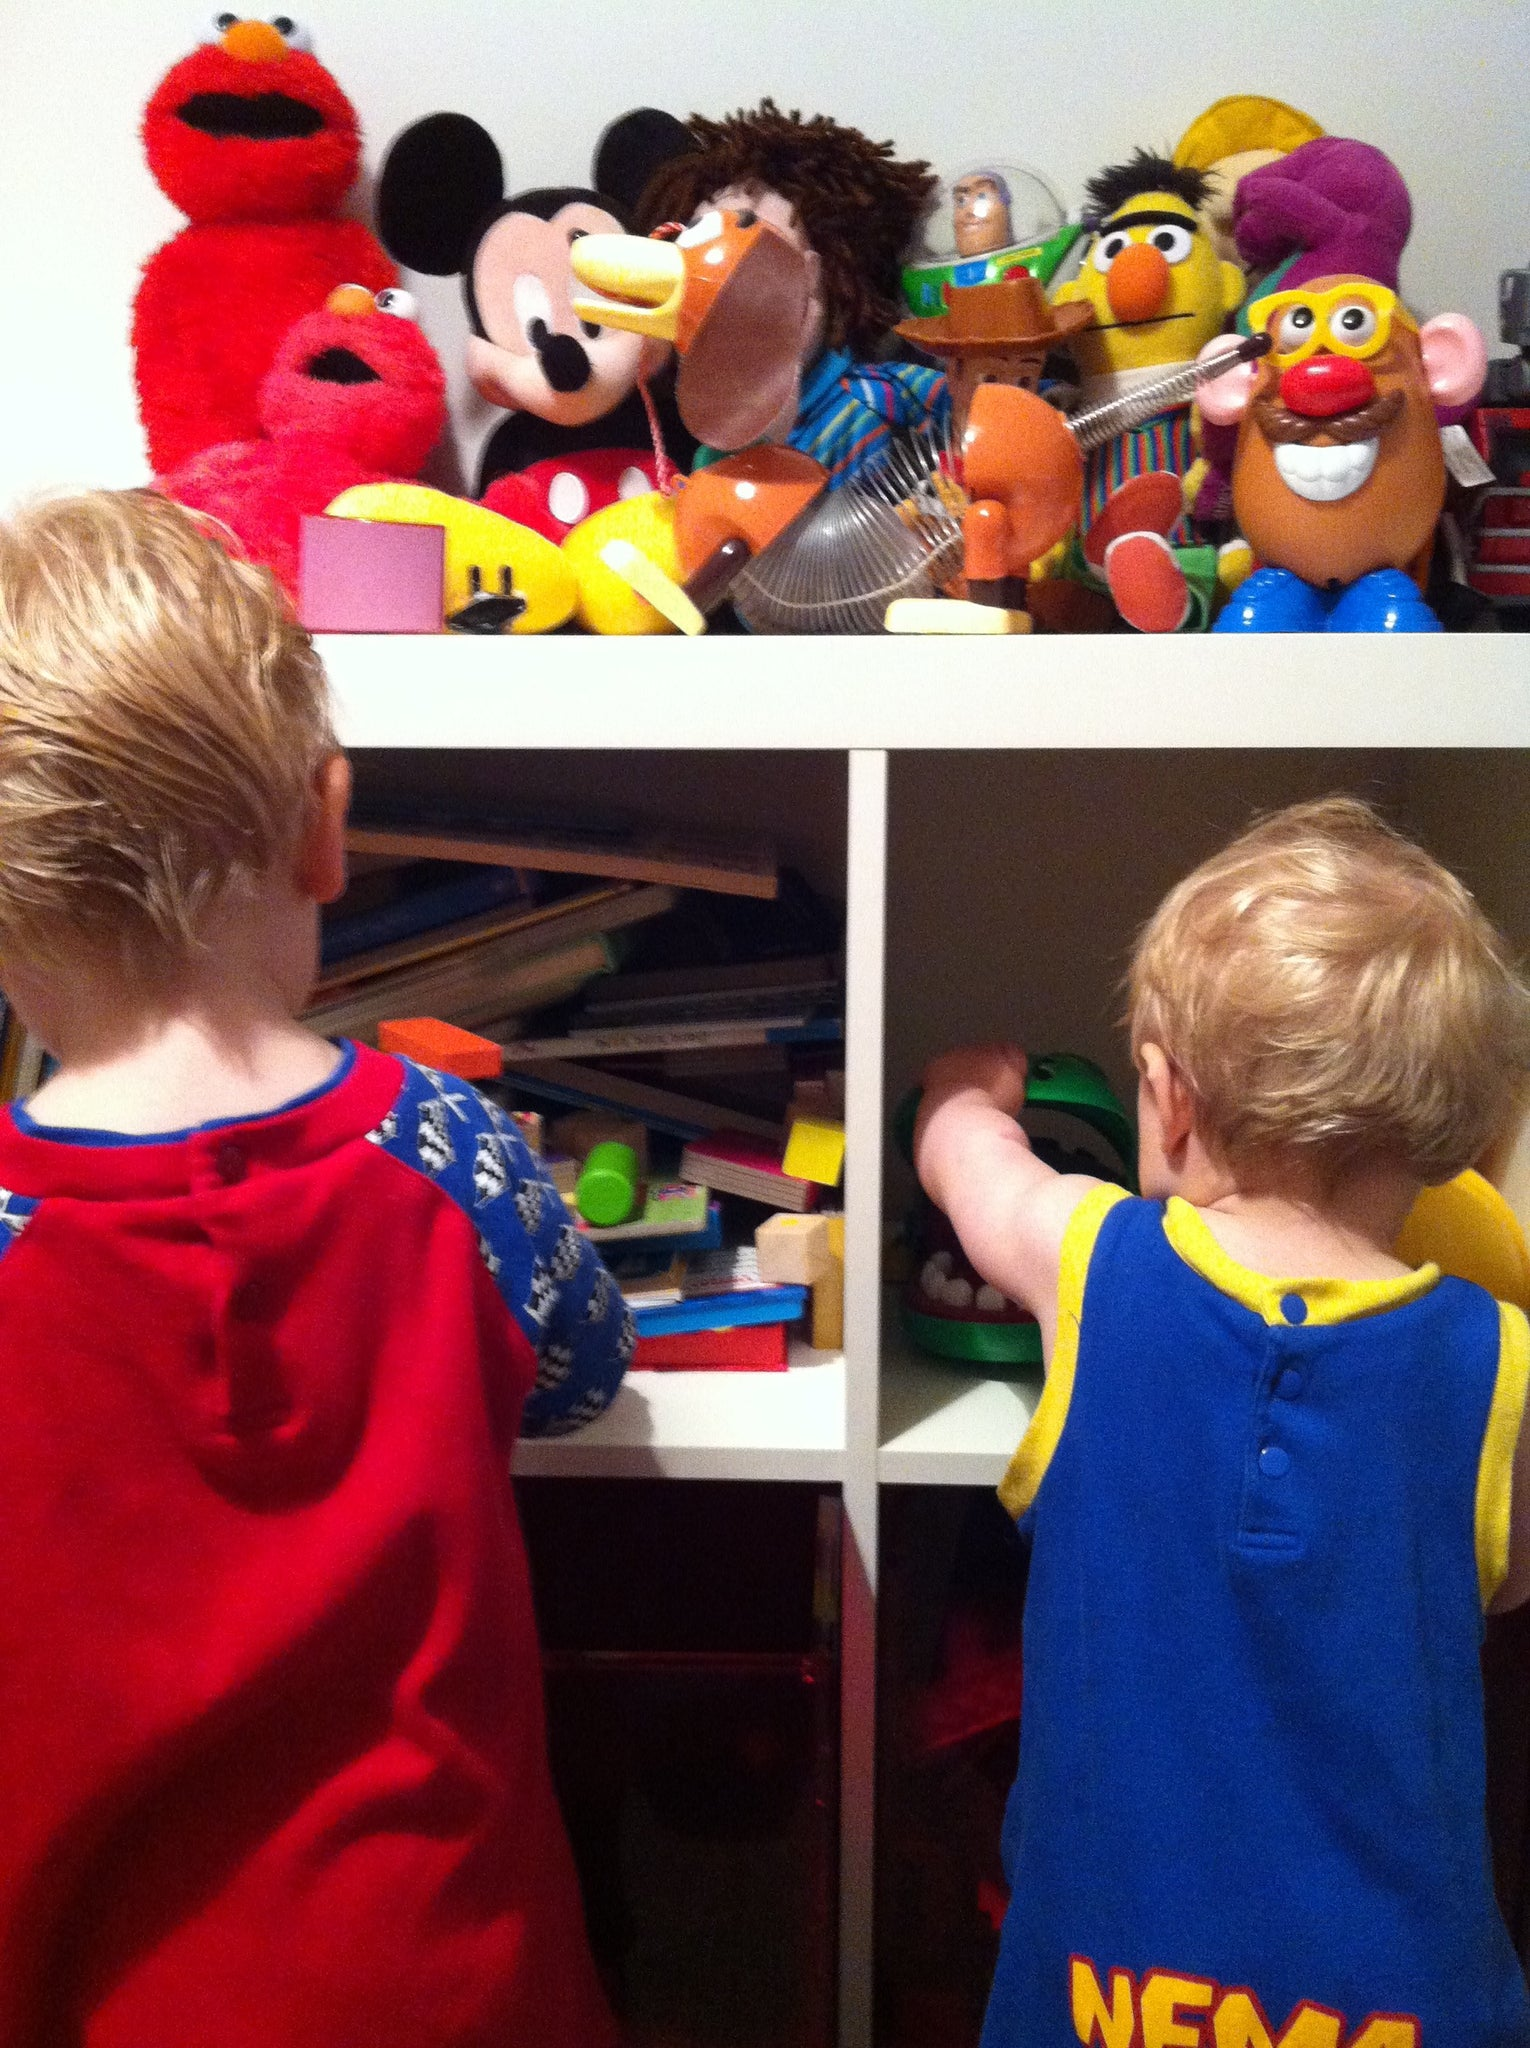 Pre-Christmas Toy Declutter